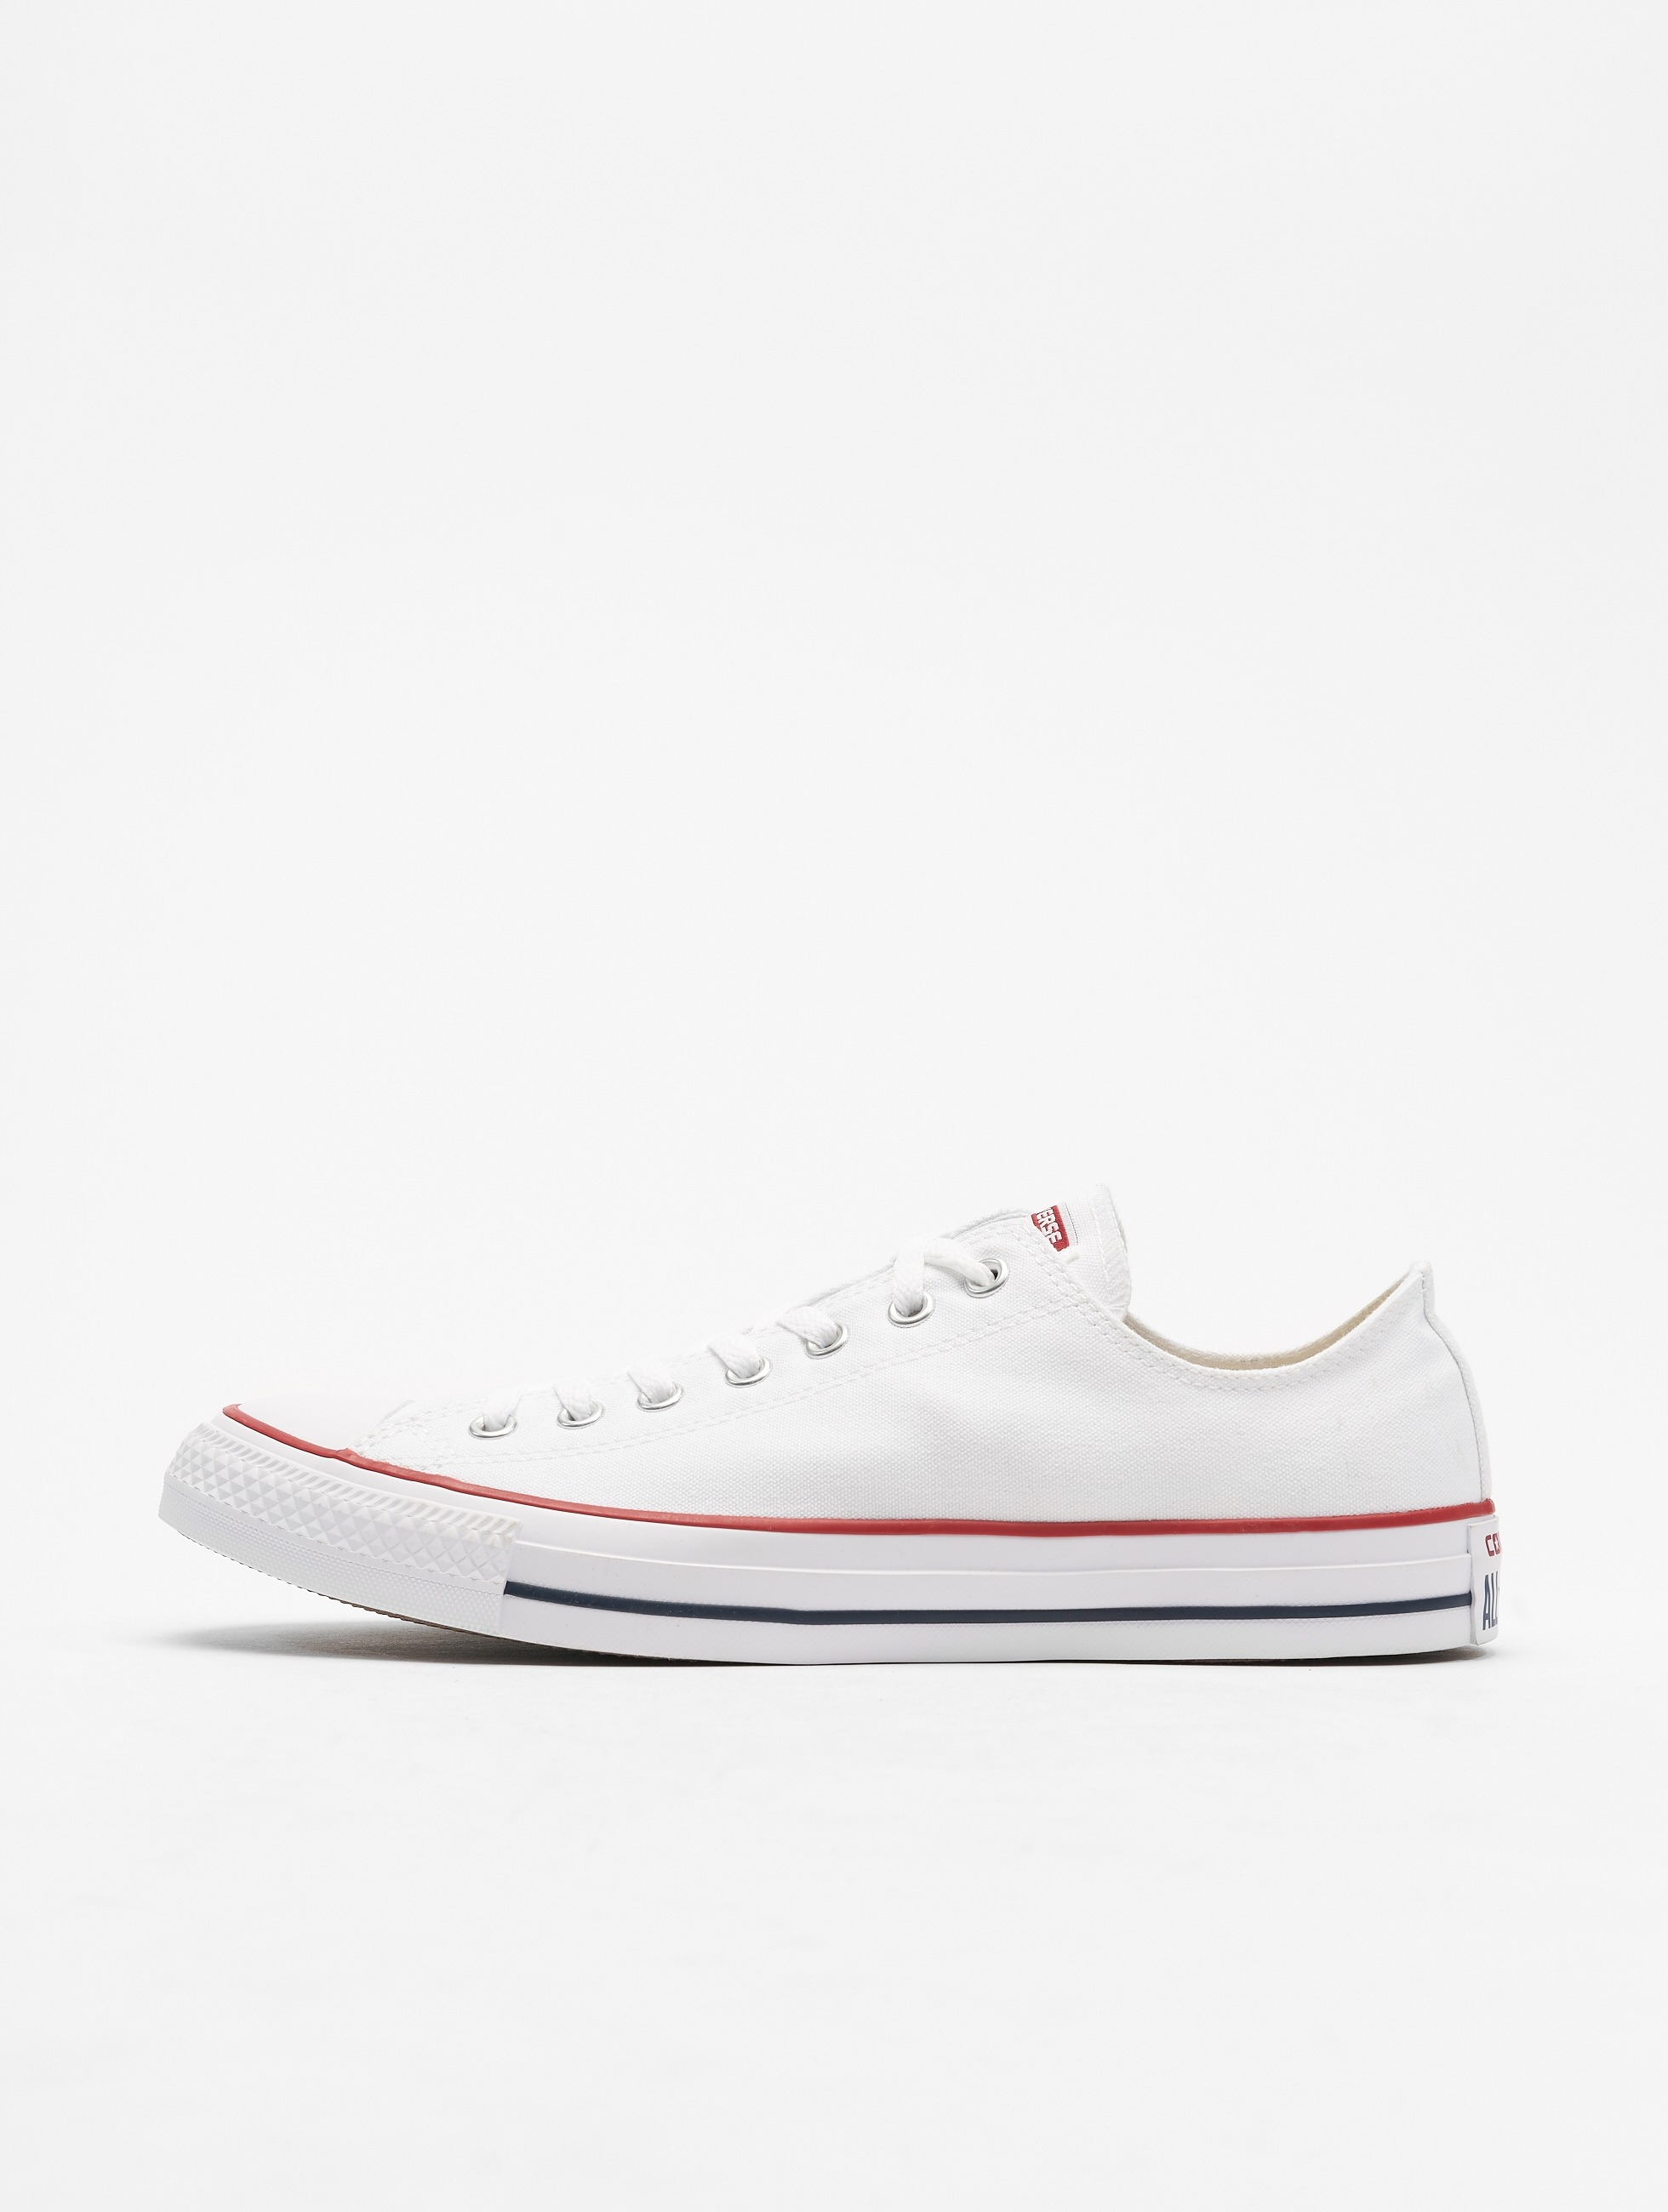 Converse All Star Ox Canvas Sneakers Optical White